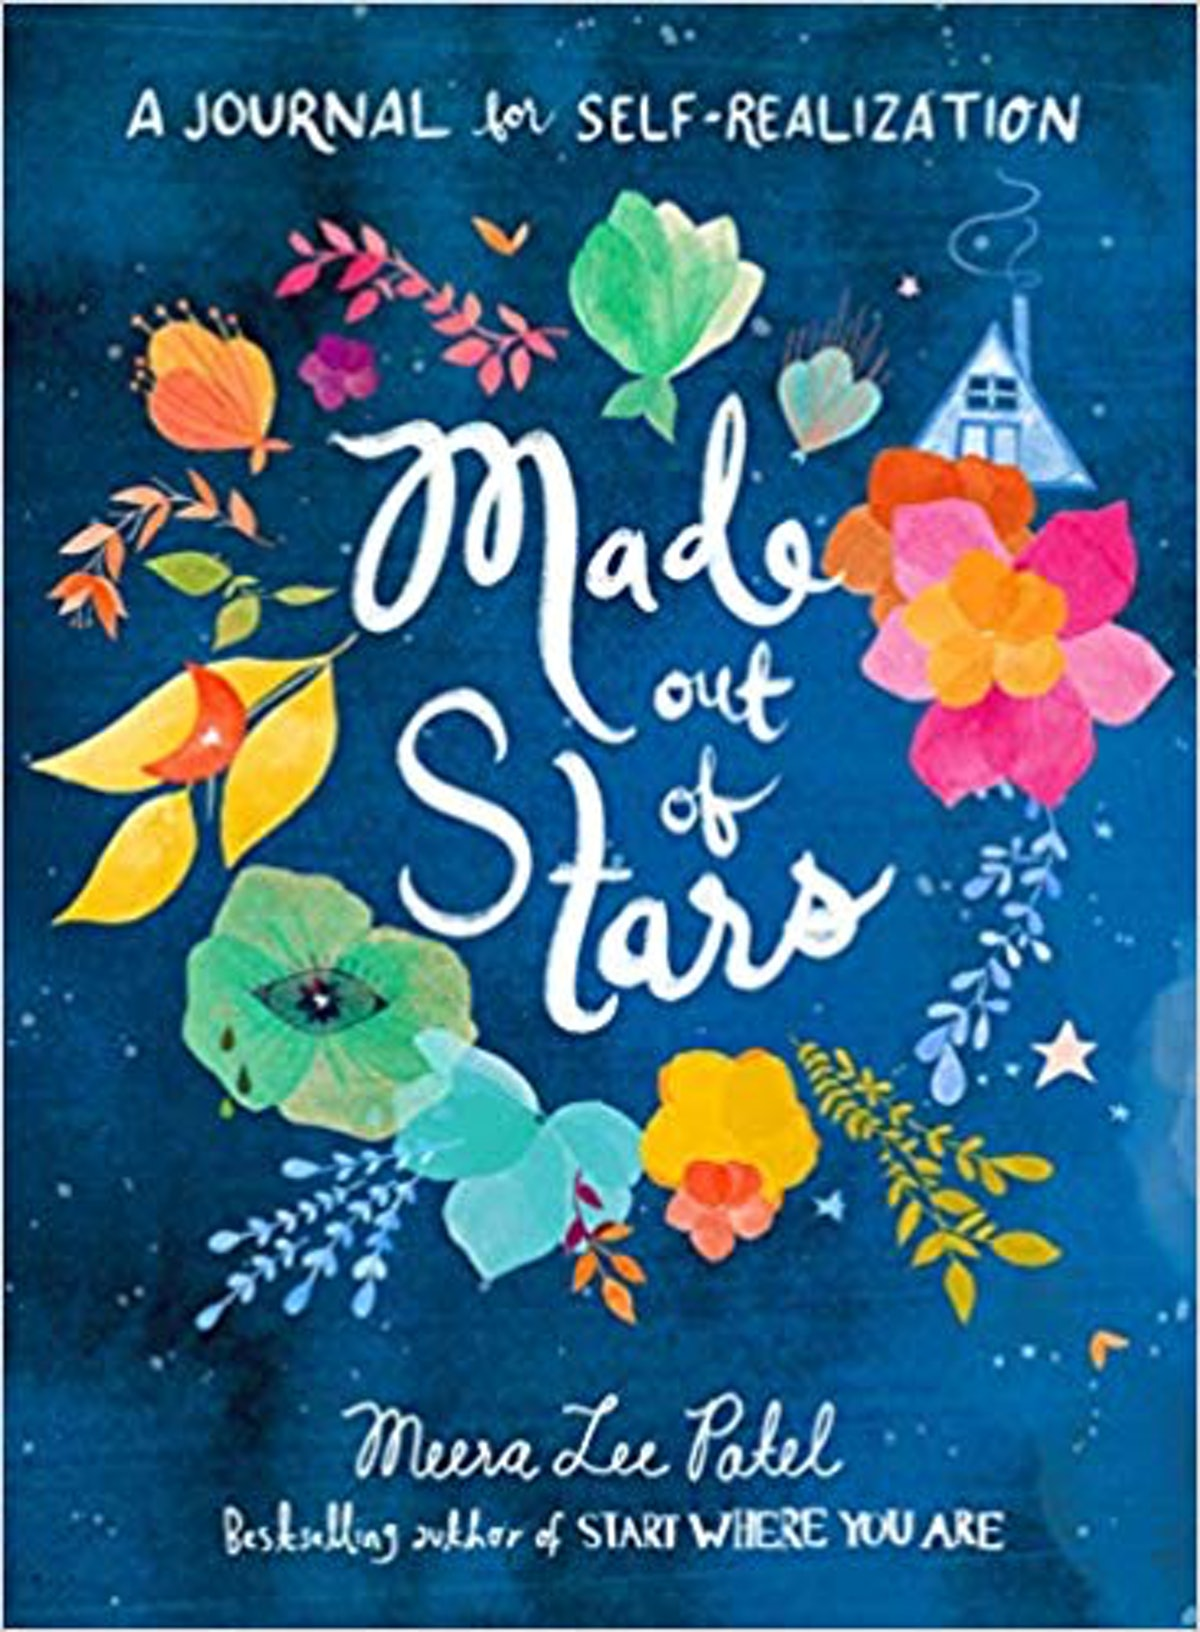 Made Out of Stars: A Journal for Self-Realization